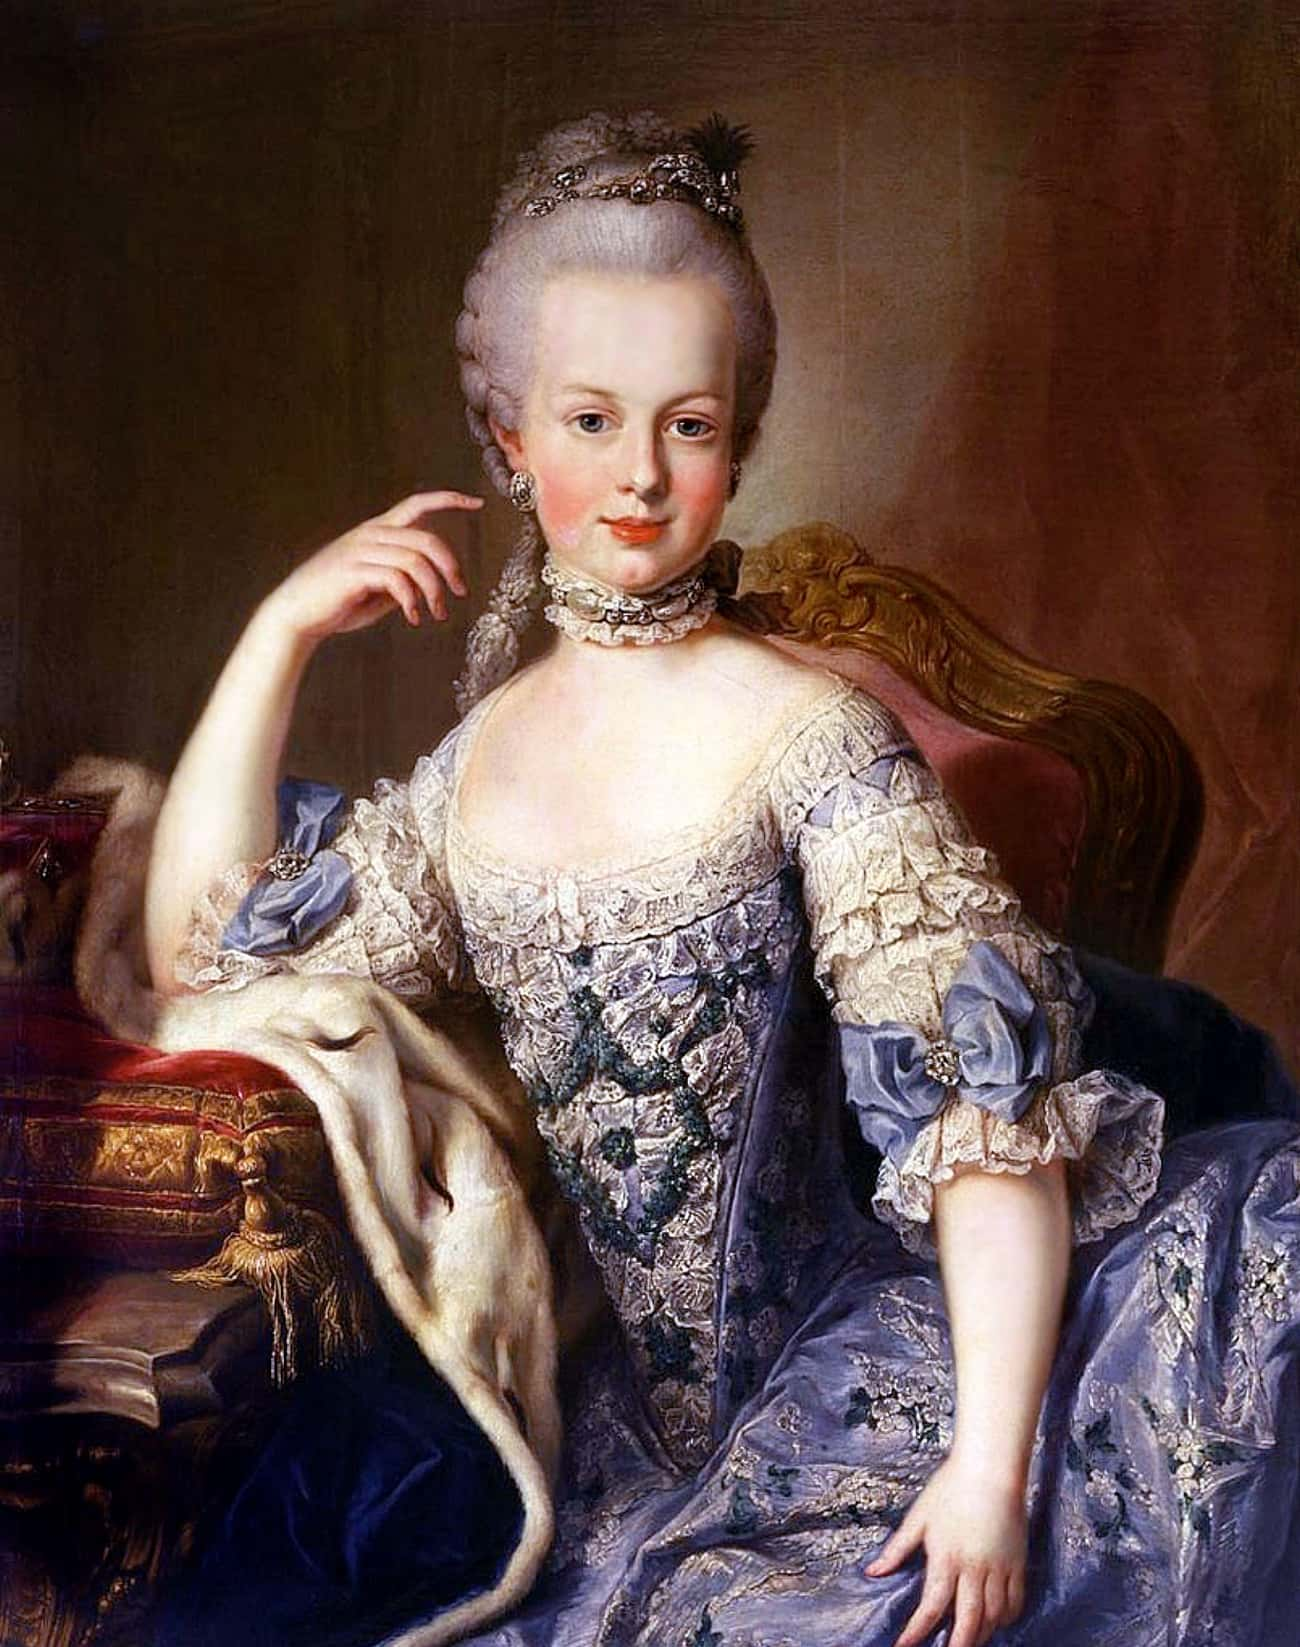 Marie Antoinette Had A Private Love Shack On The Premises